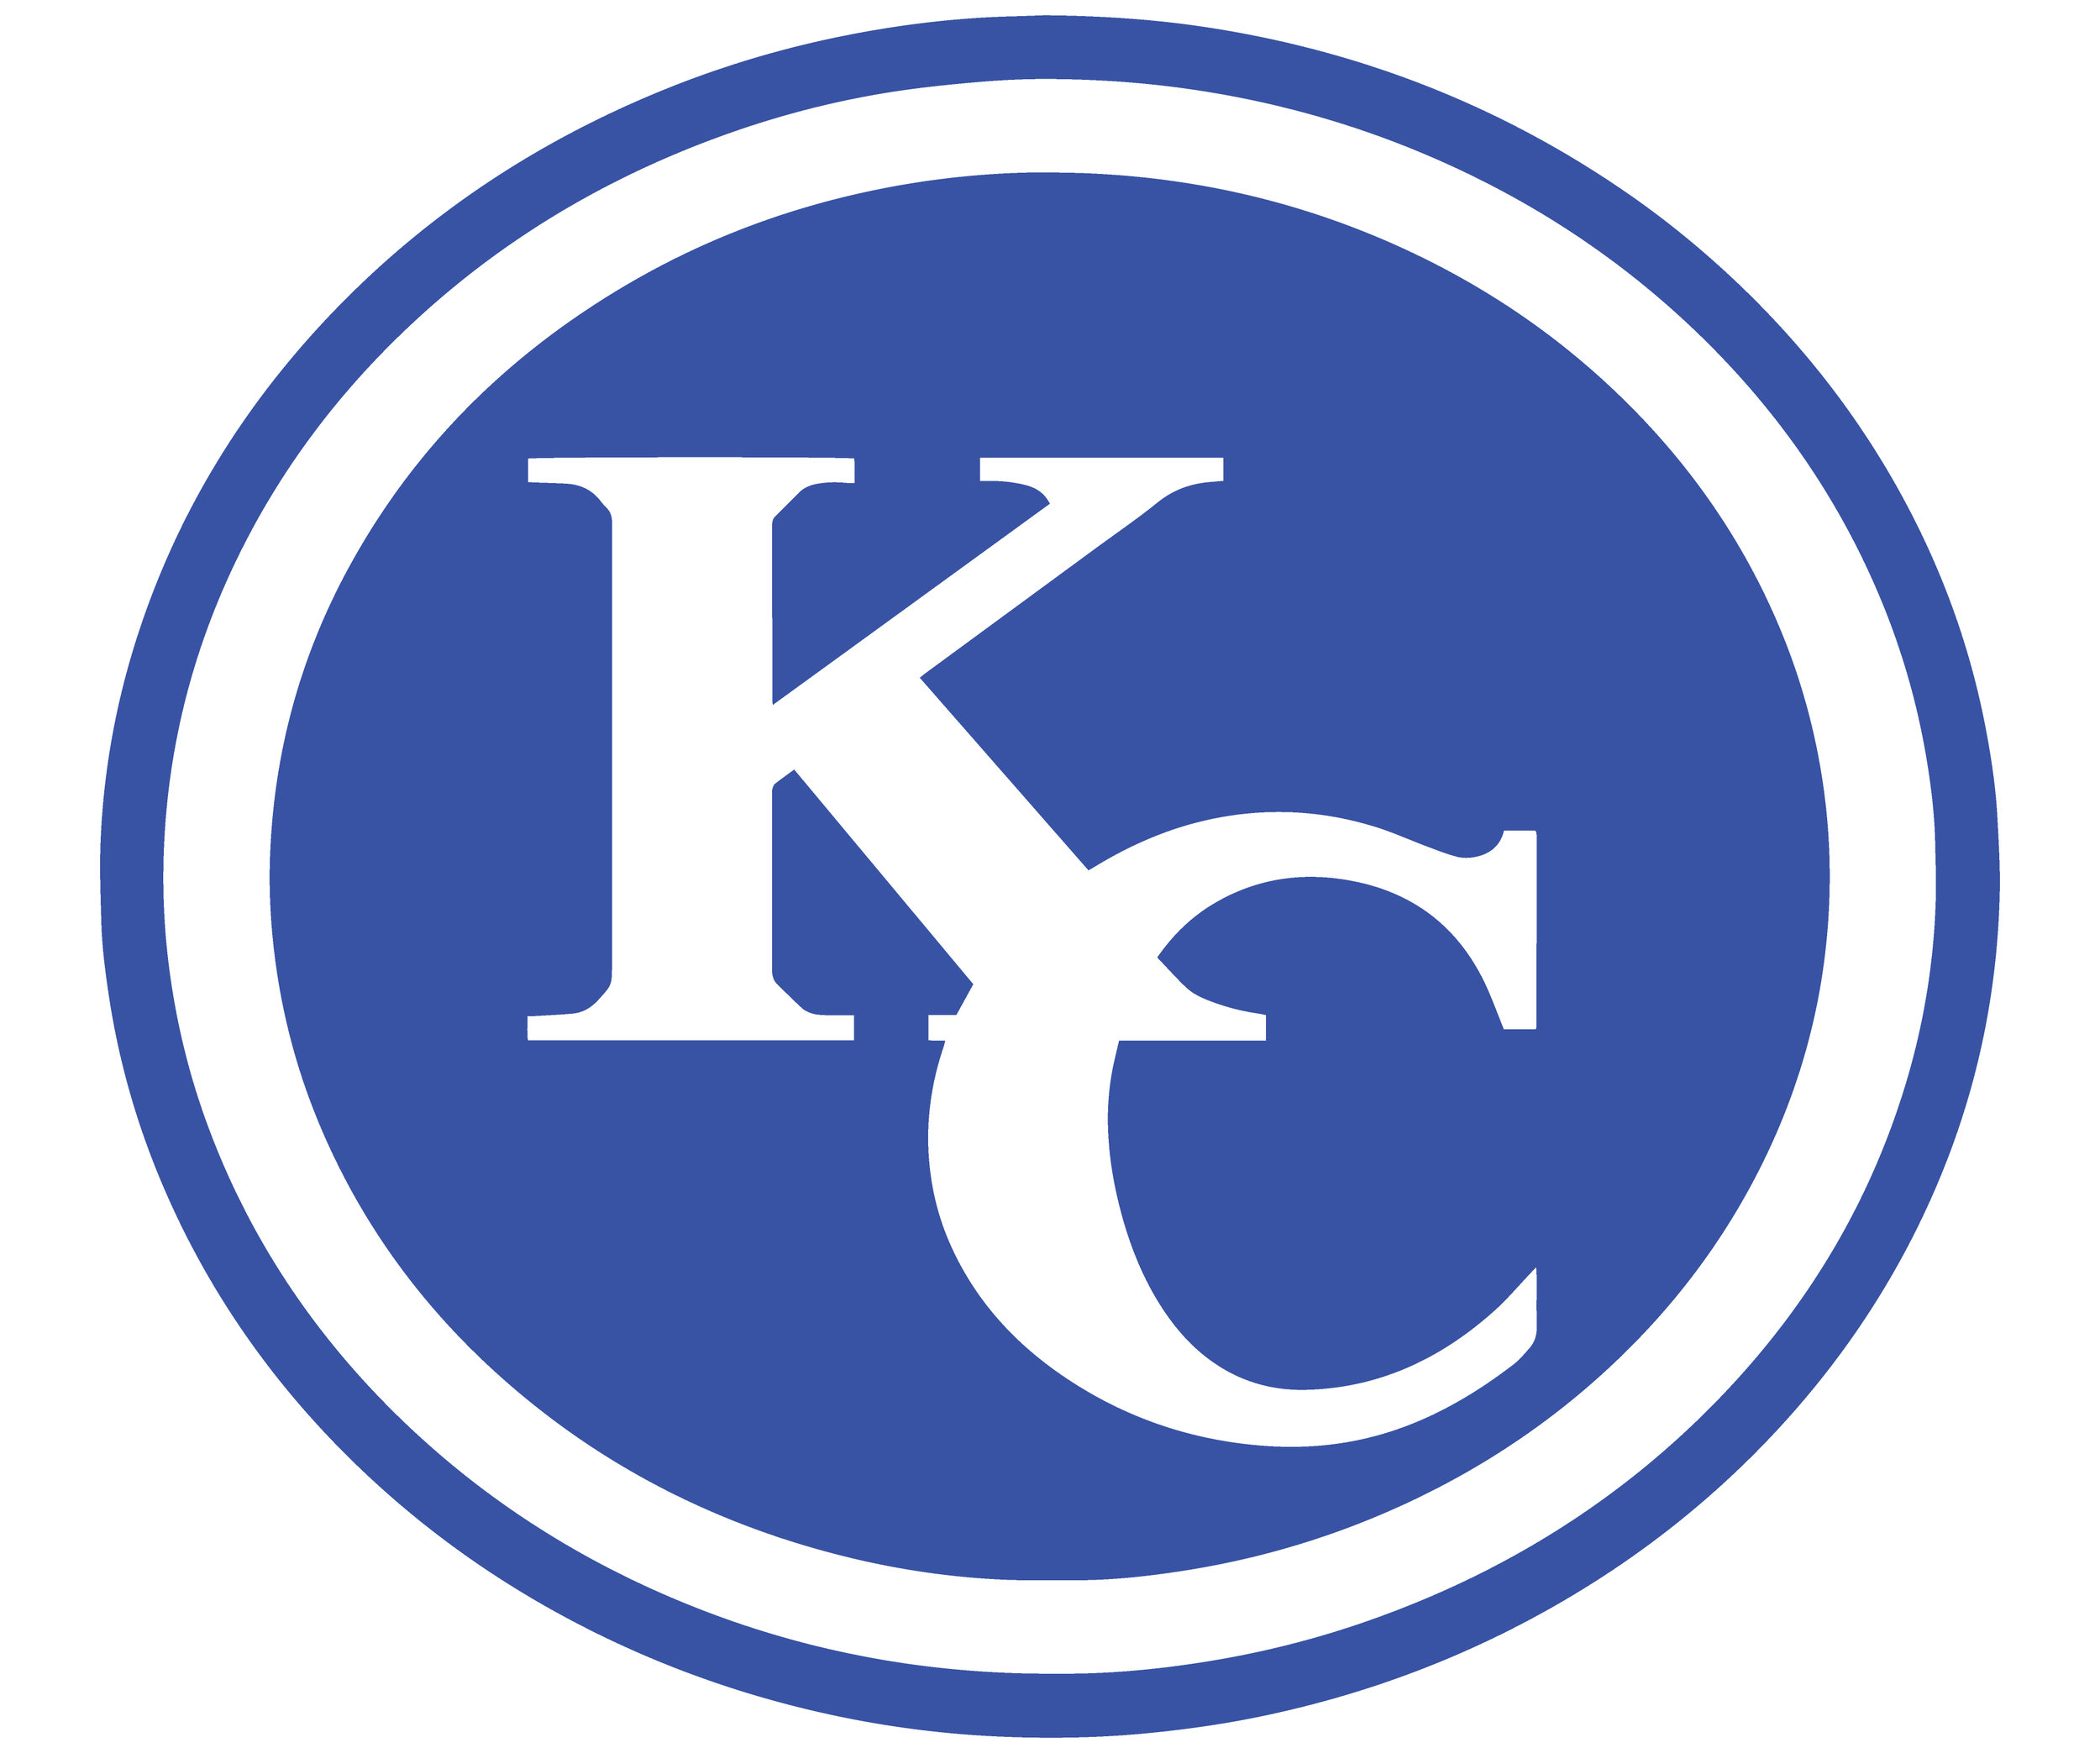 Kinkade-Cornell Insurance Agency, Inc. - is a family owned and operated Independent Insurance Agency located in Leitchfield, Kentucky. We have proudly served the needs of individuals, families, businesses, and municipalities in Grayson and surrounding counties since 1975.